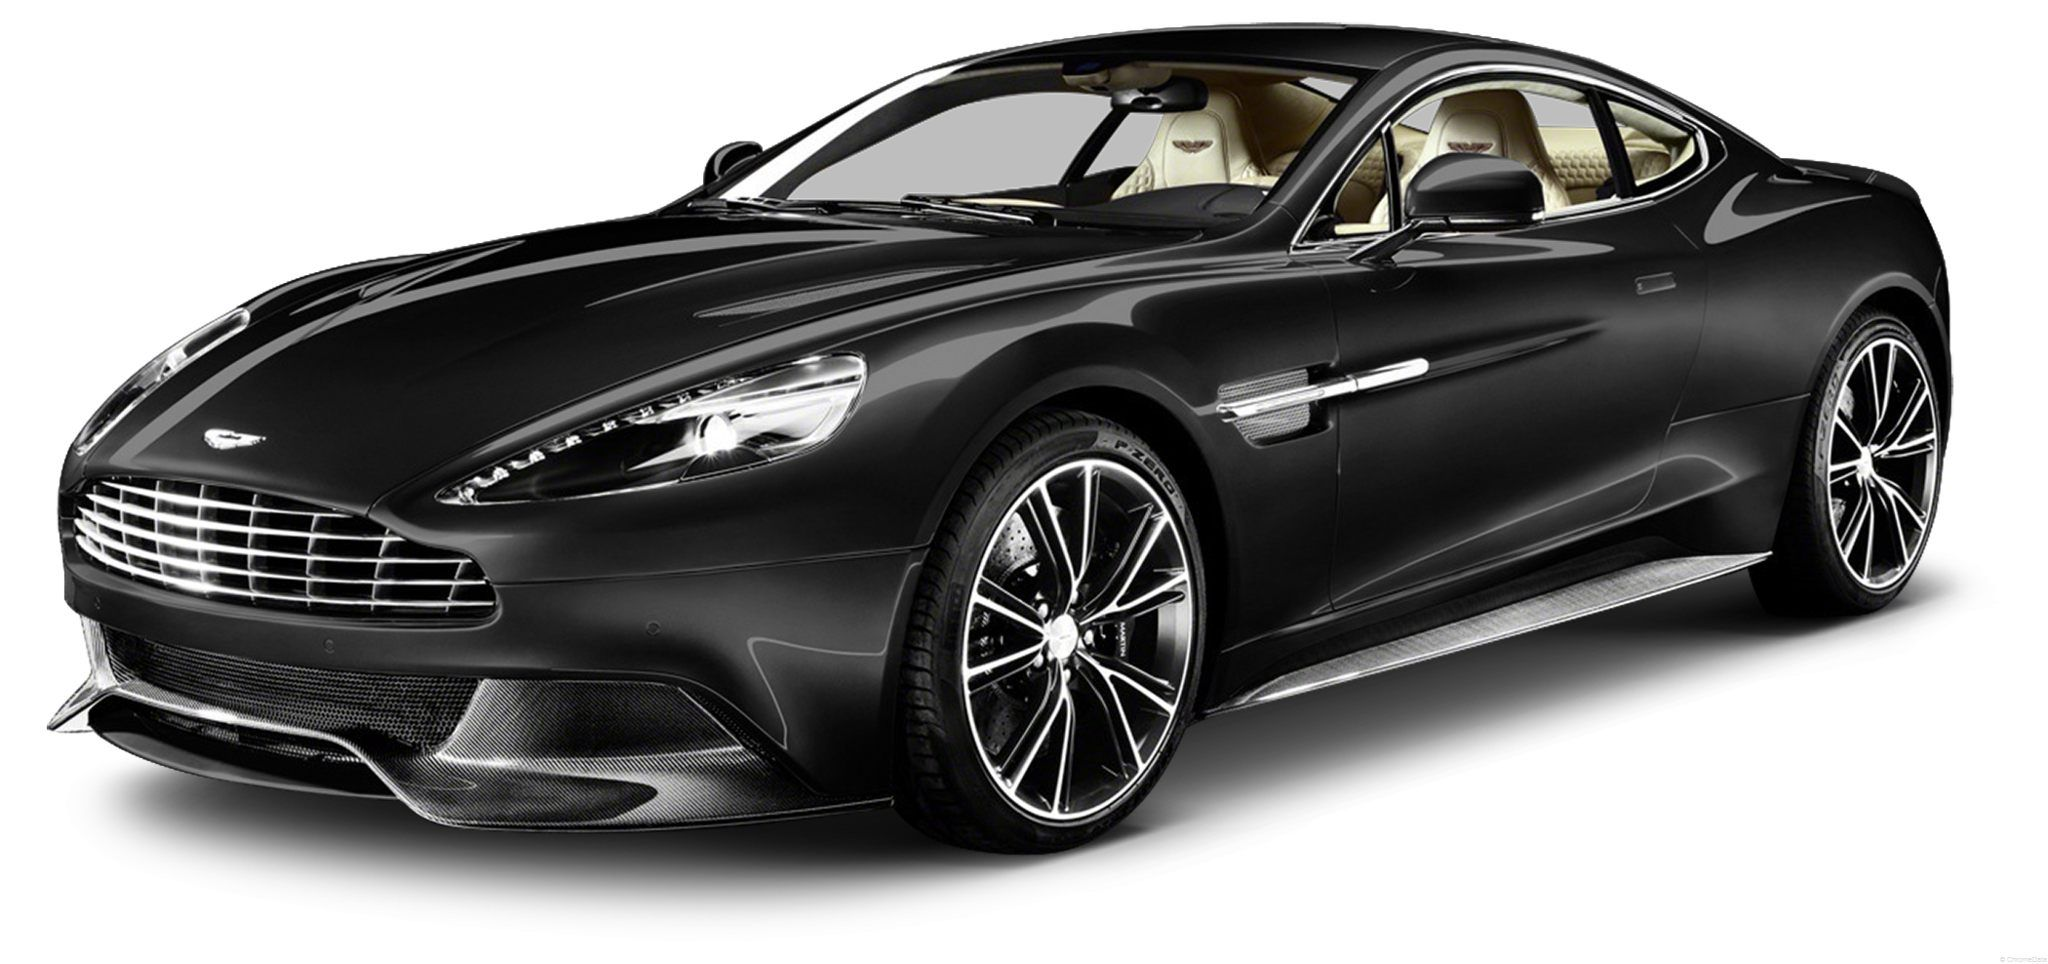 aston martin vanquish blacked out. aston martin vanquish lease deals and special offers blacked out